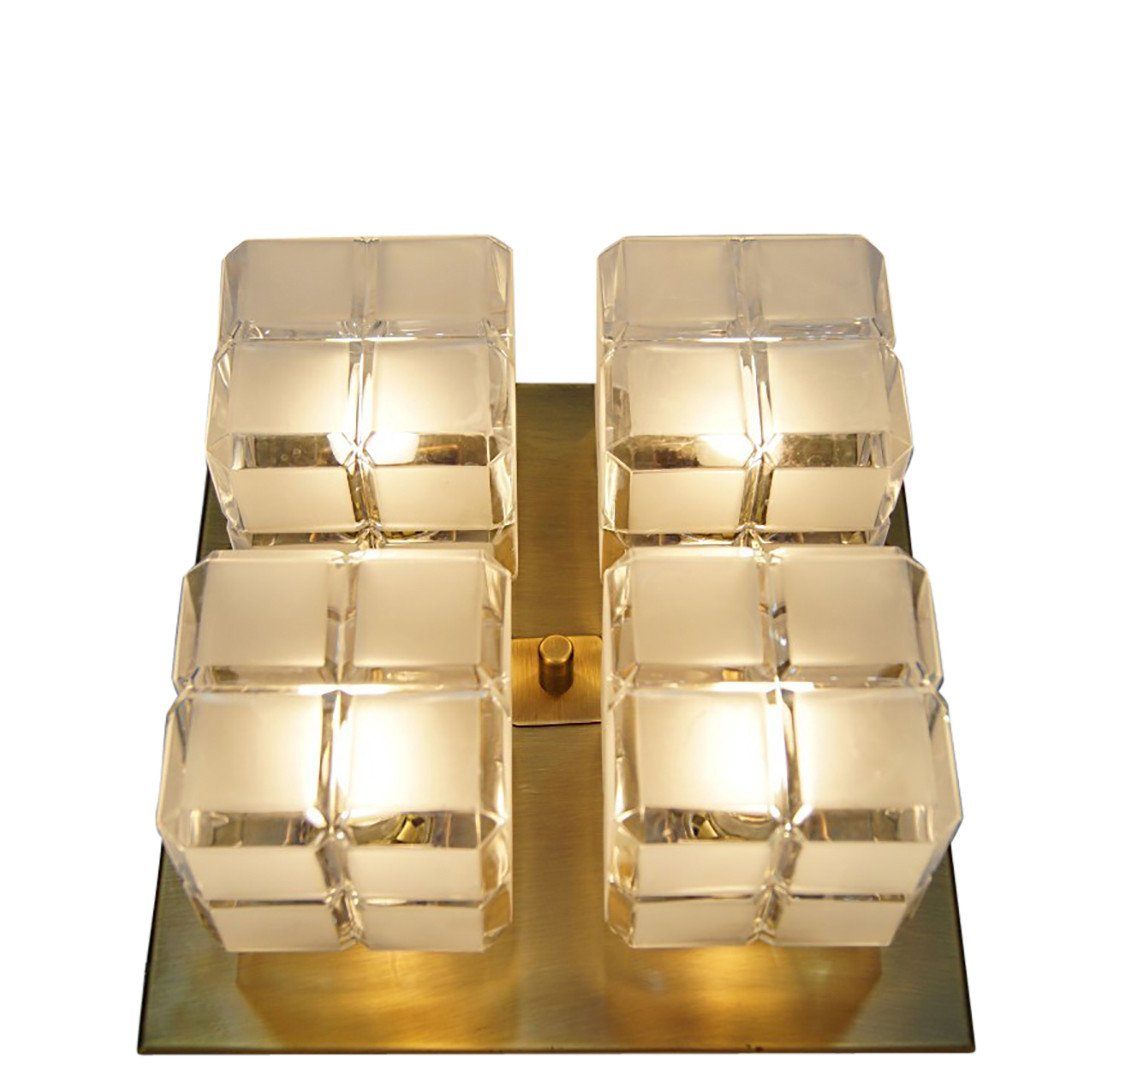 Set of Two Cube Ceiling Lamps, Hillebrand, Germany, 1960s